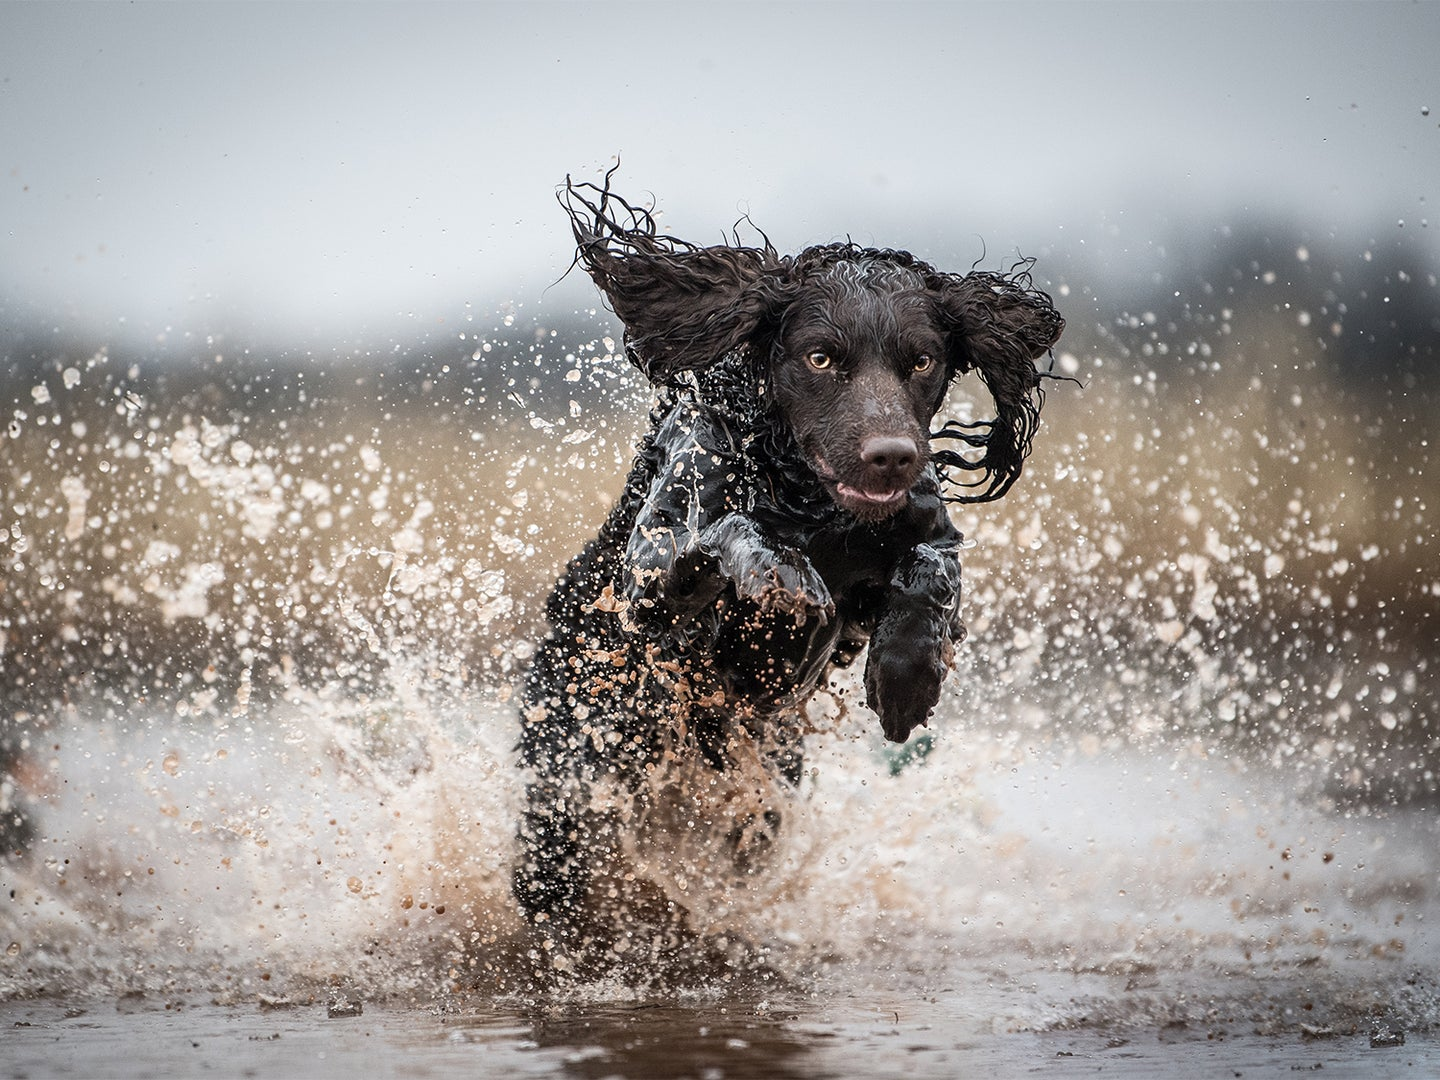 A hunting dog retrieving in the water.